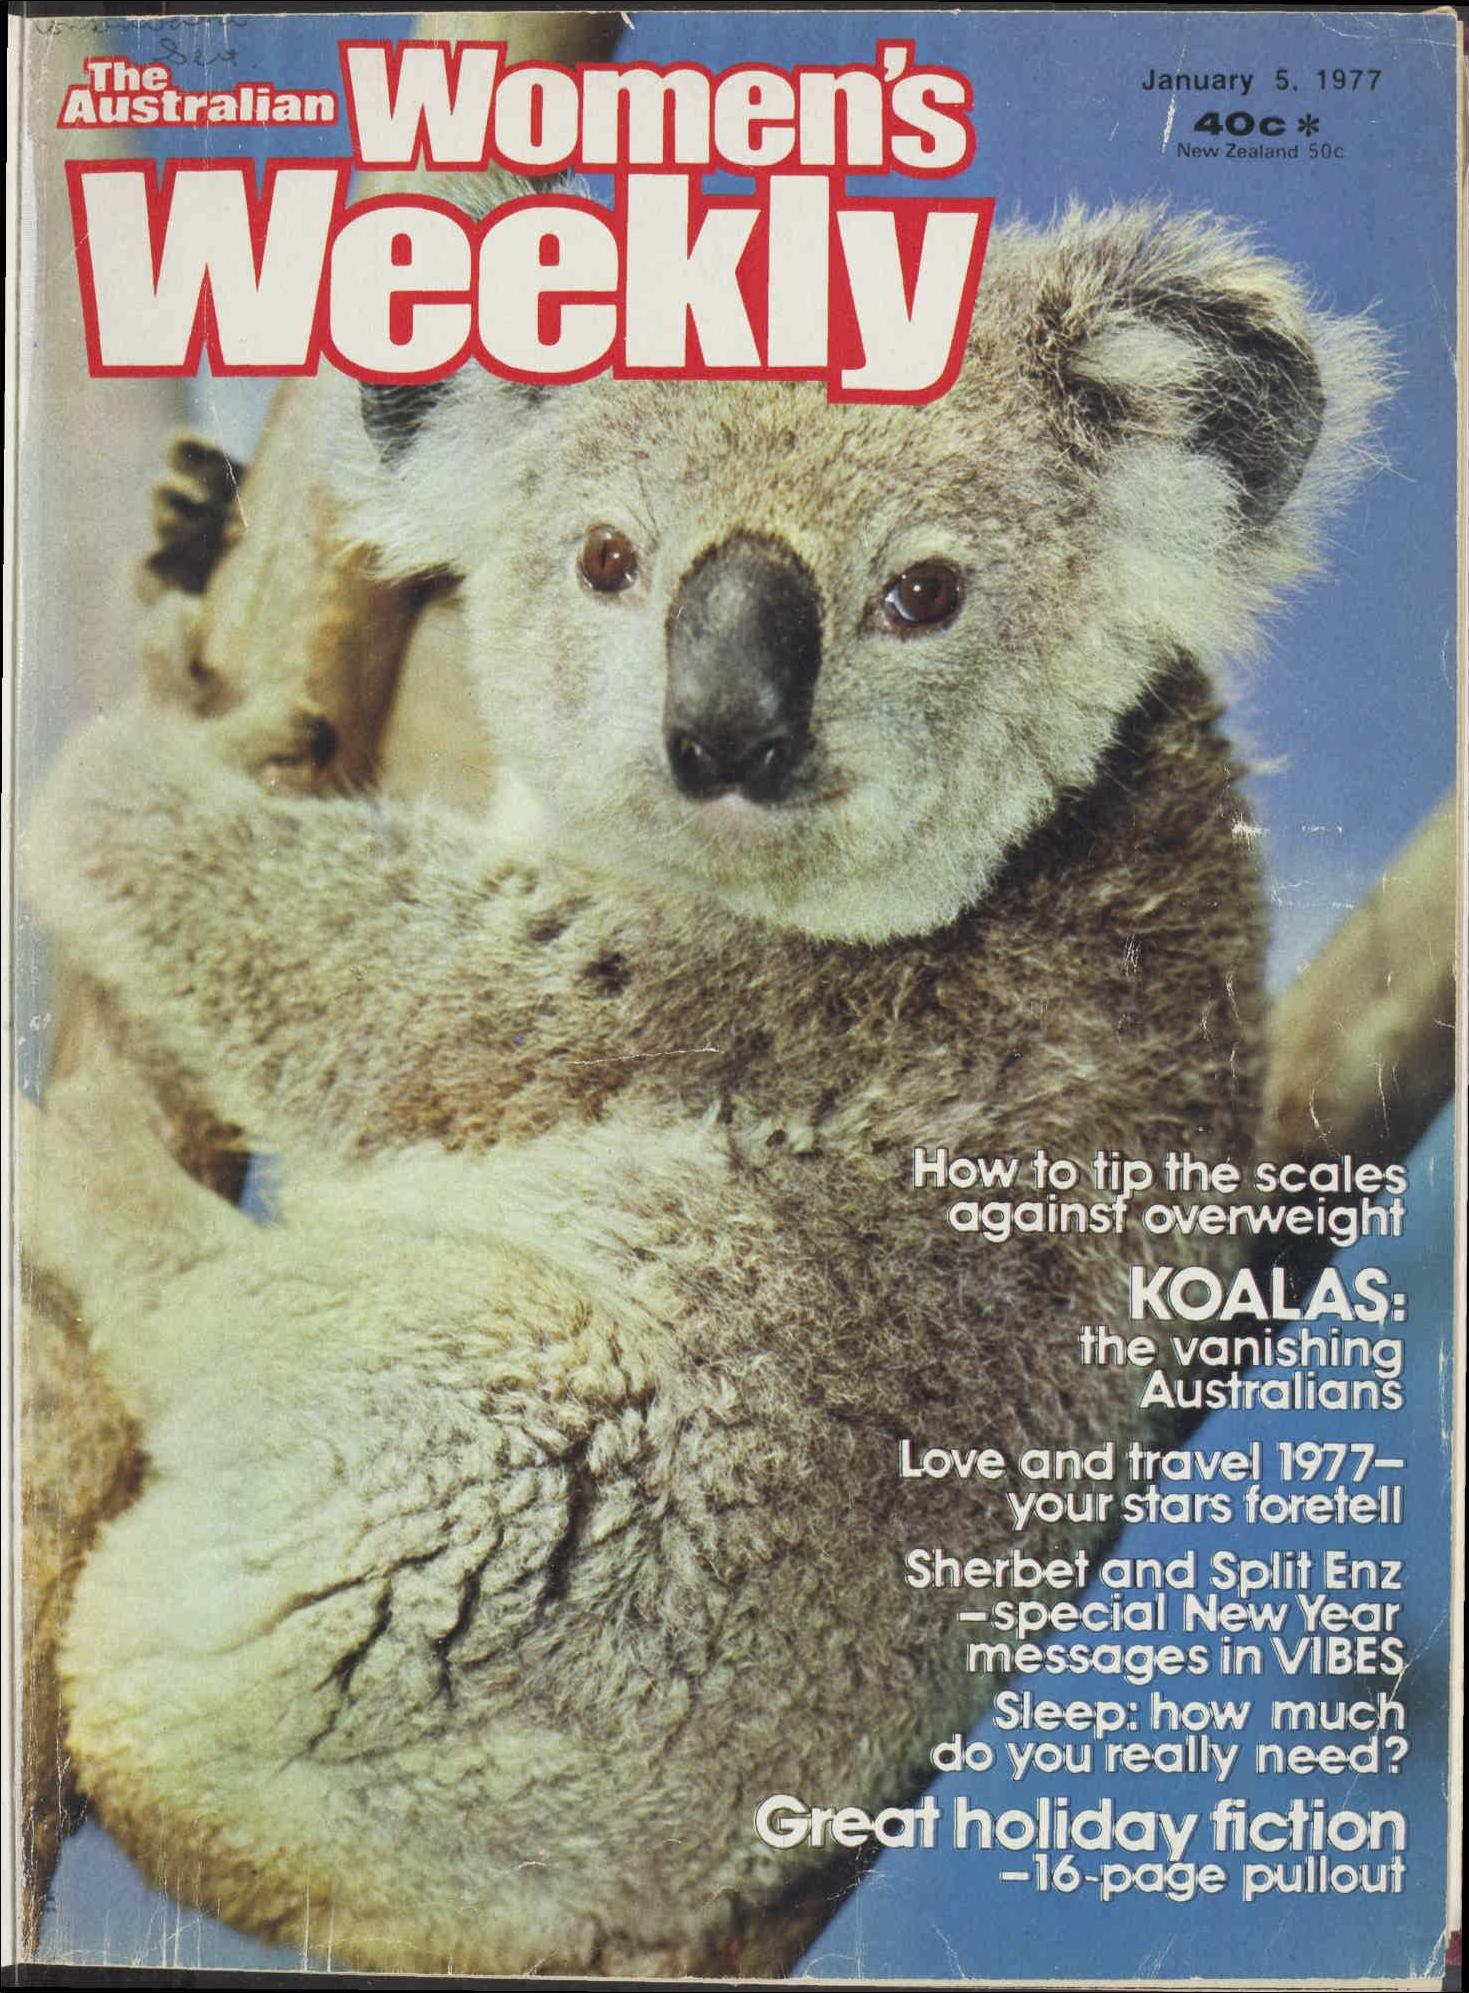 Overweight koalas: a women's magazine cover story from another era.